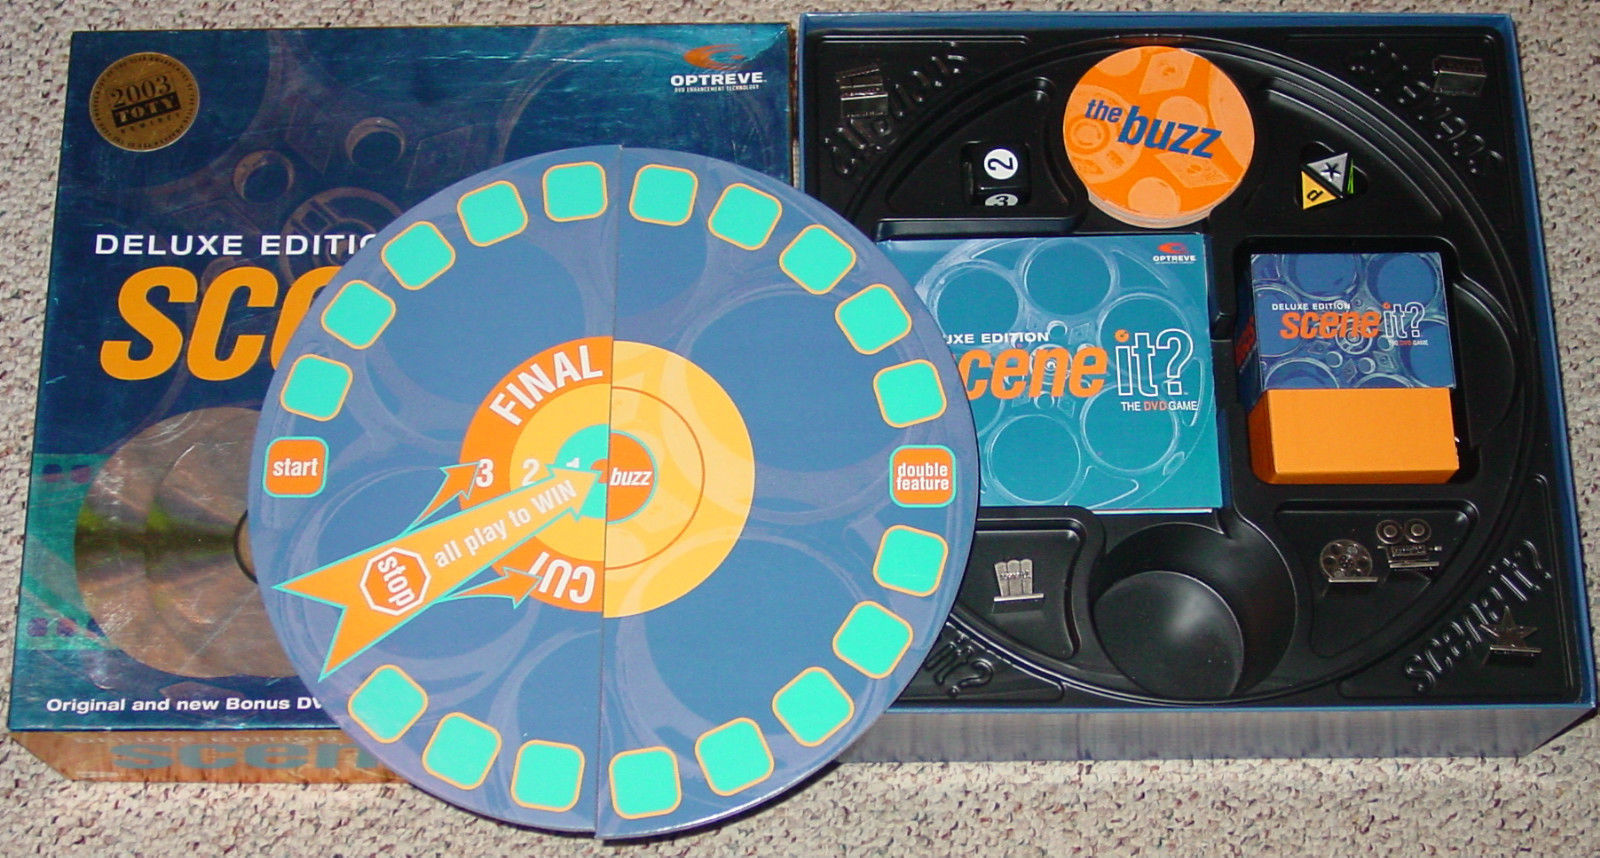 SCENE IT DVD GAME DELUXE EDITION 2004 MATTEL SCREENLIFE LIGHTLY PLAYED CONDITI image 2